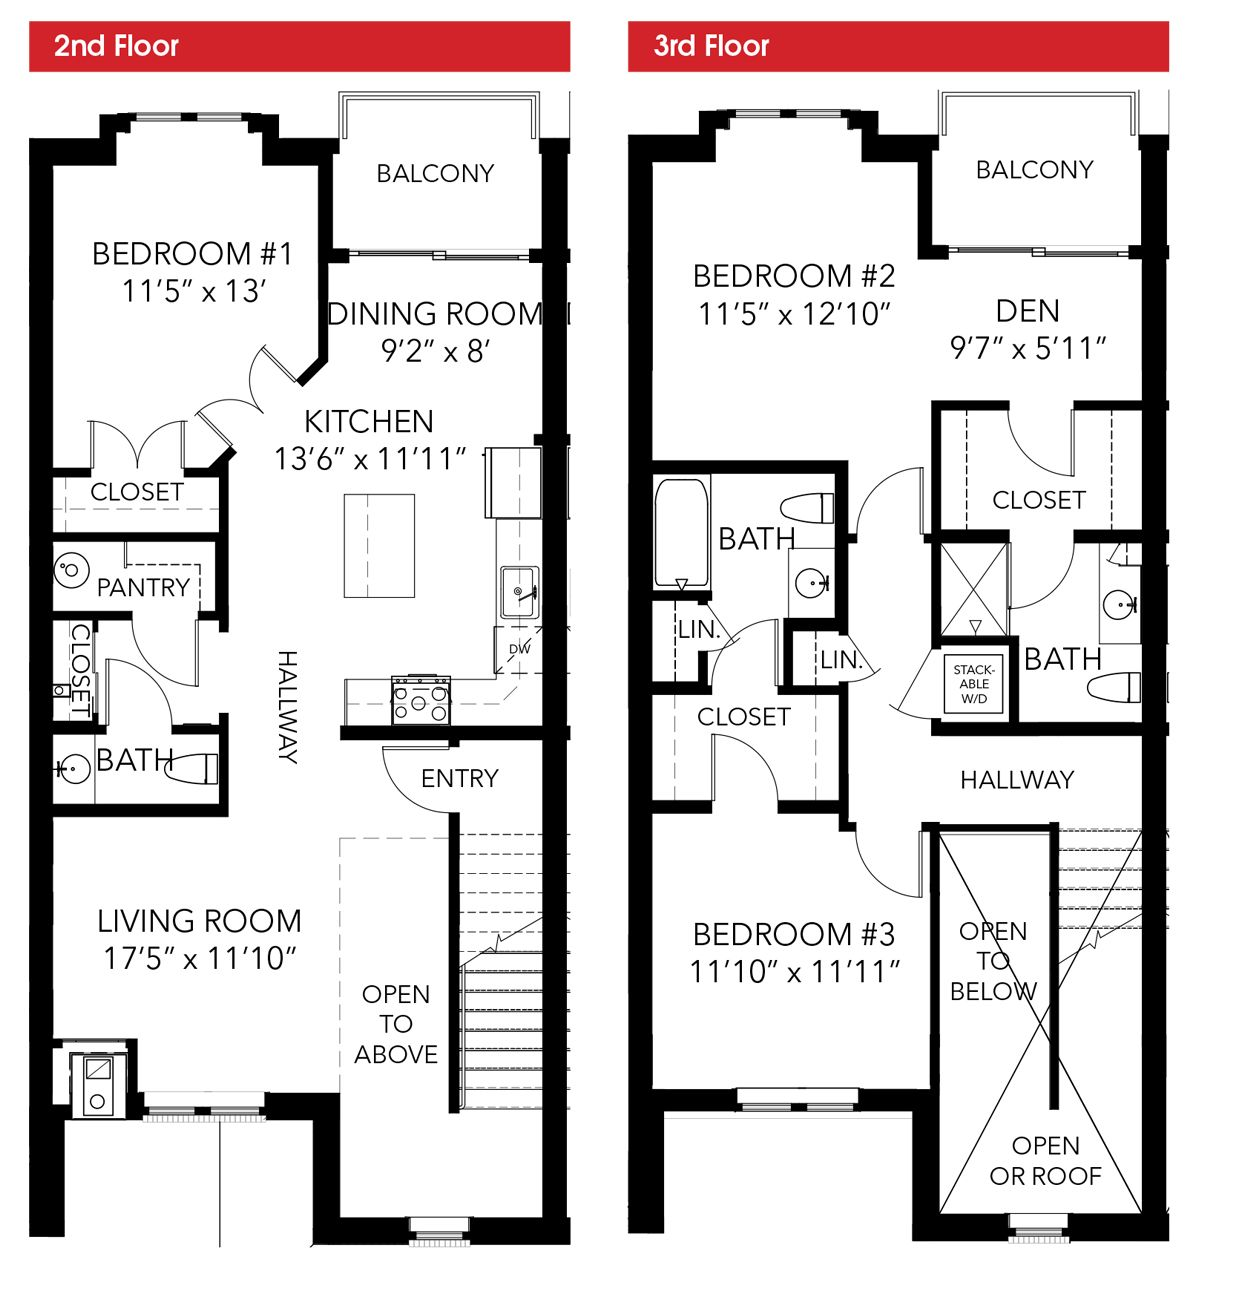 Oakbourne floor plan 3 bedroom 2 story leed certified for Two story condo floor plans